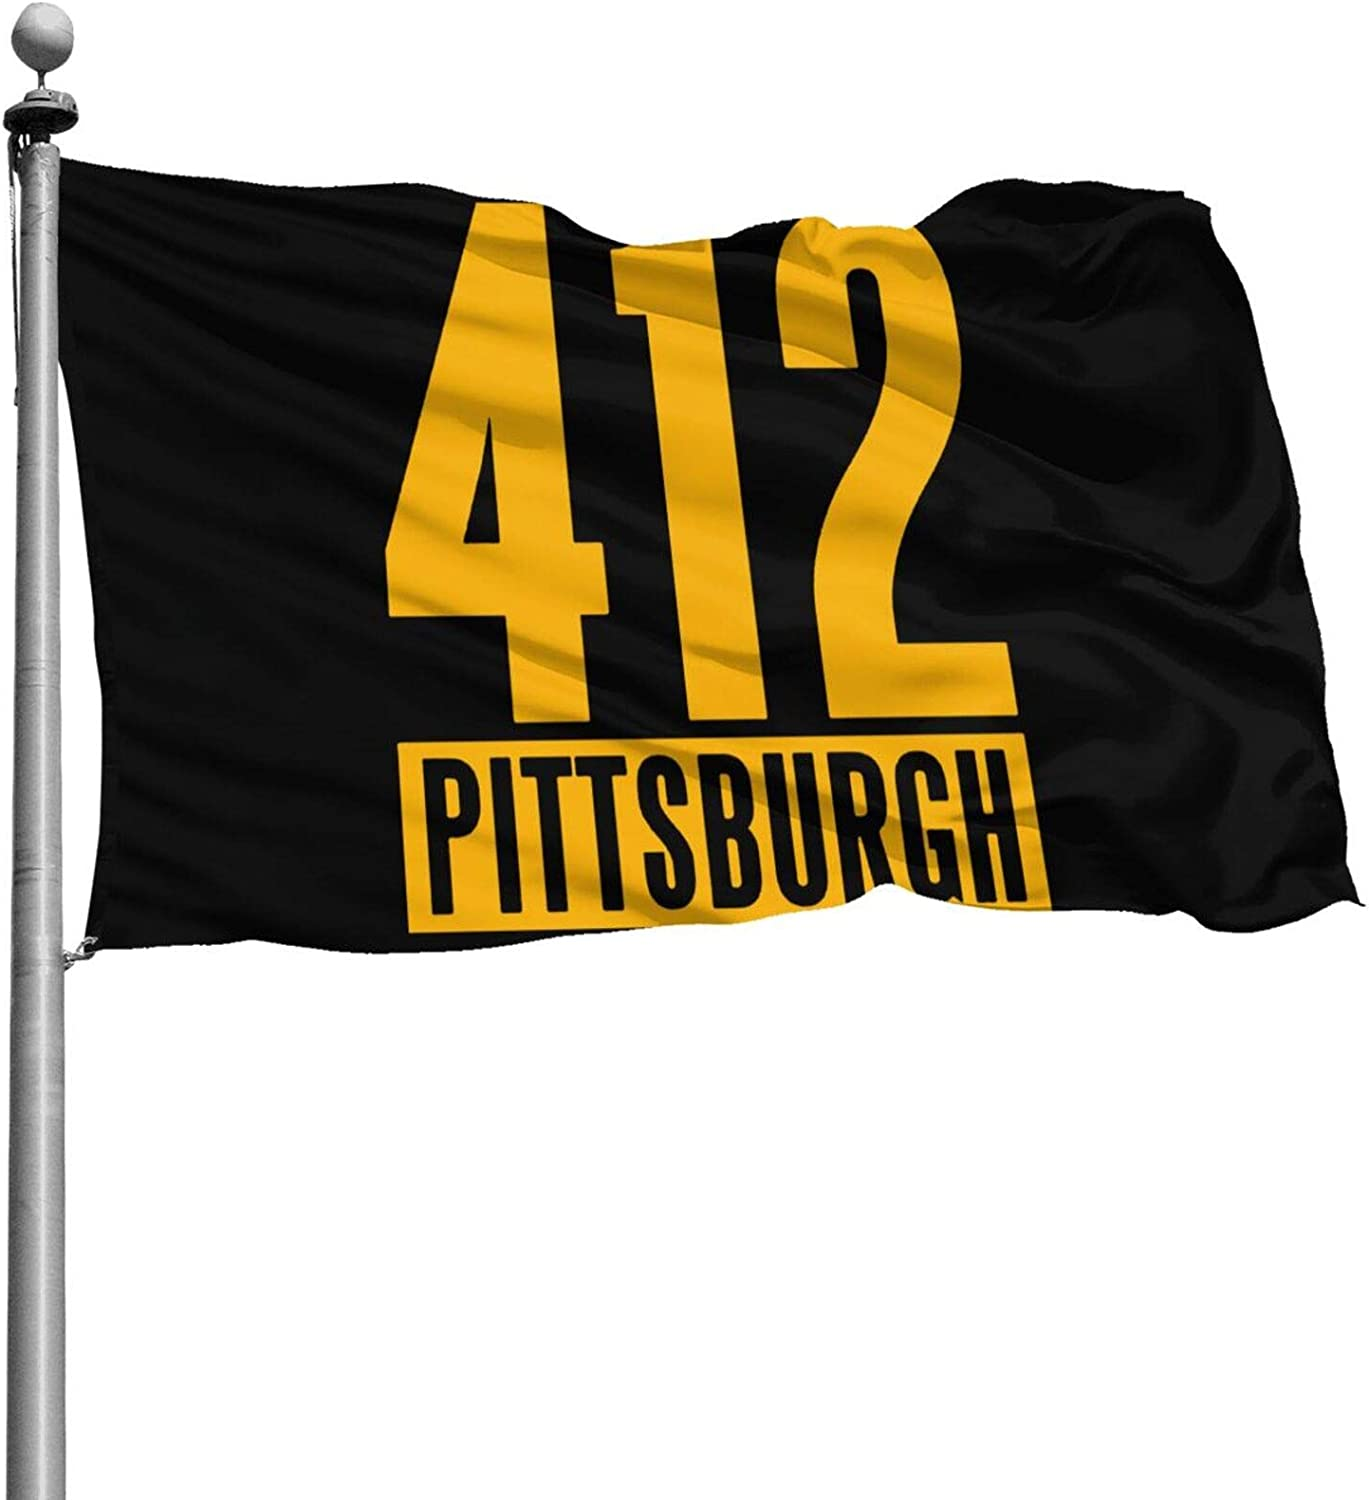 MRCLJA Cool 412 Pittsburgh Flag Fade Outdoors Flags Resistant Indoors Flags